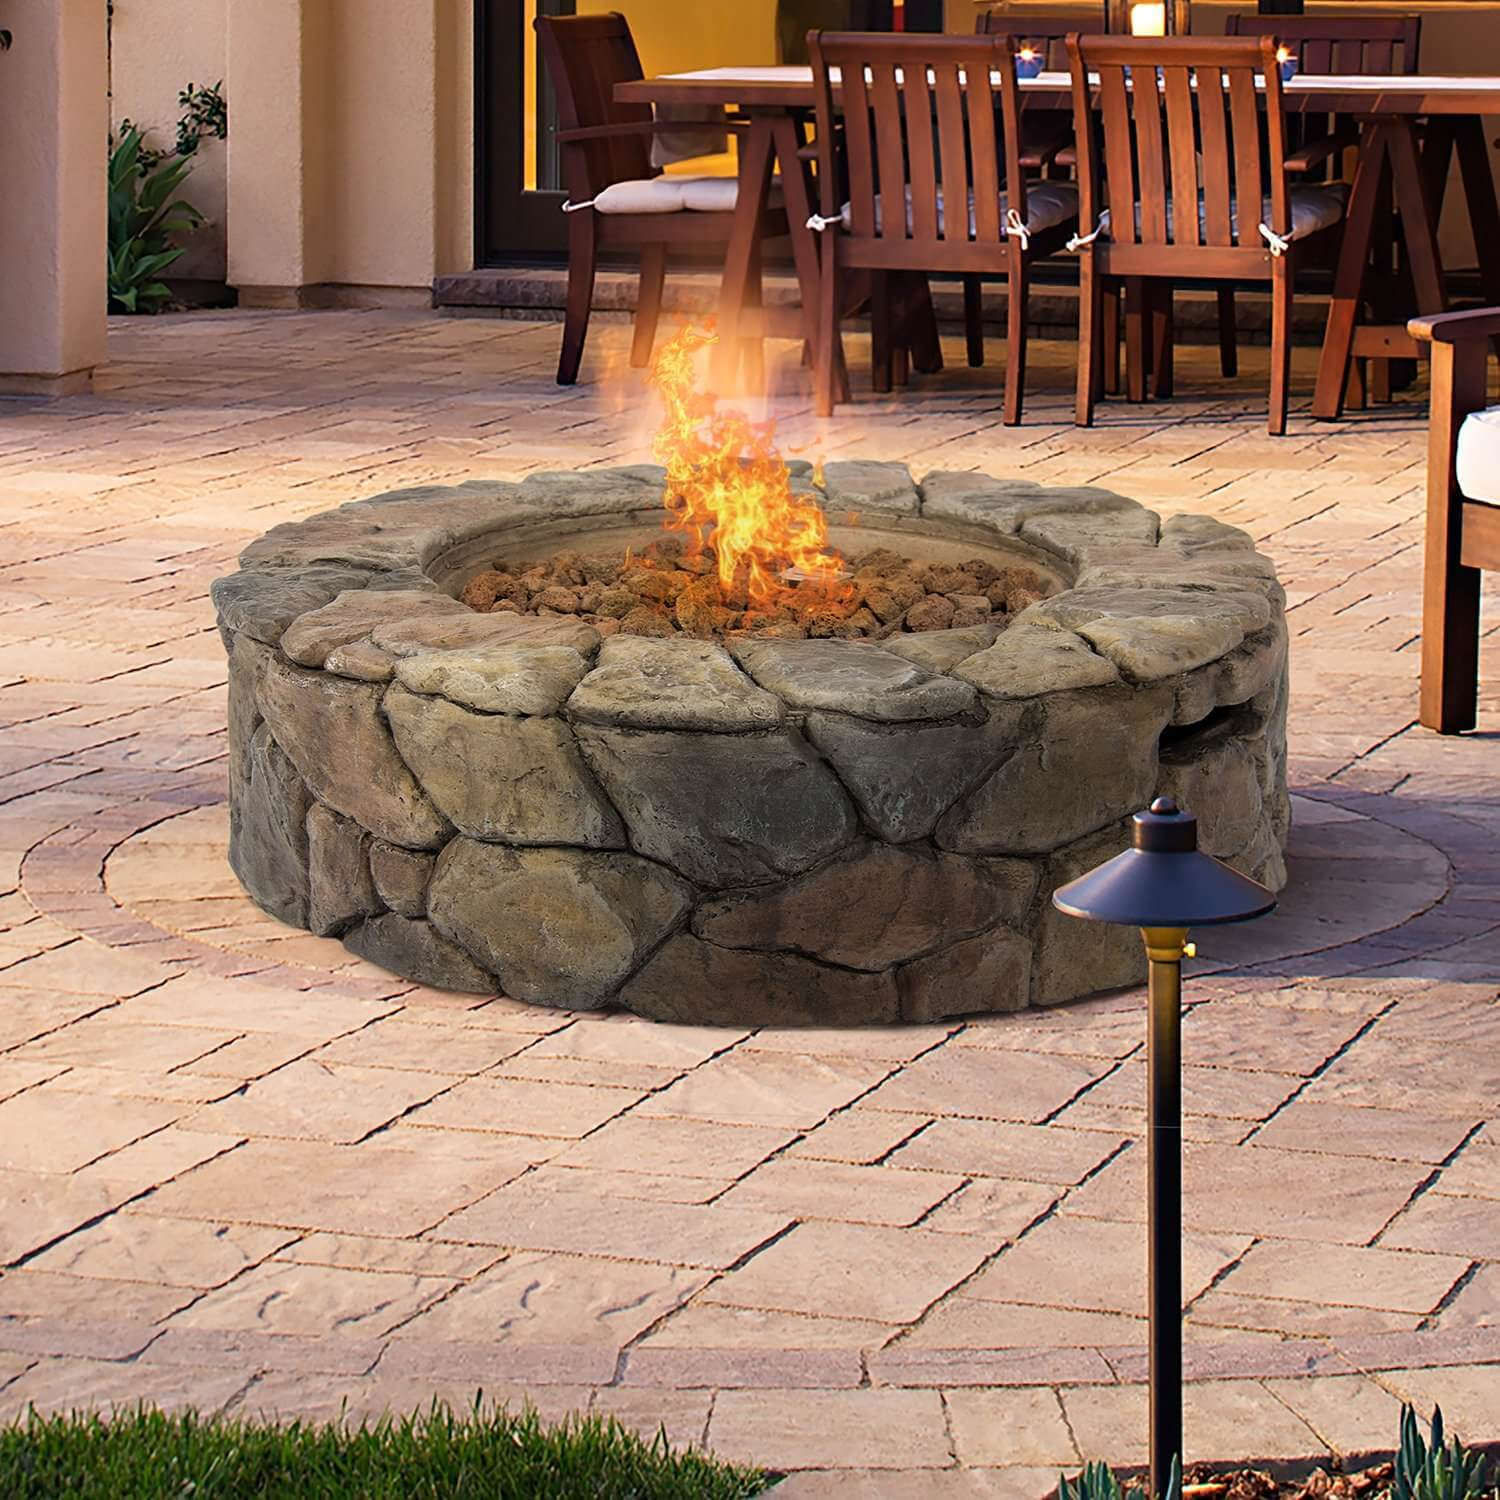 Top 15 Types of Propane Patio Fire Pits with Table Buying